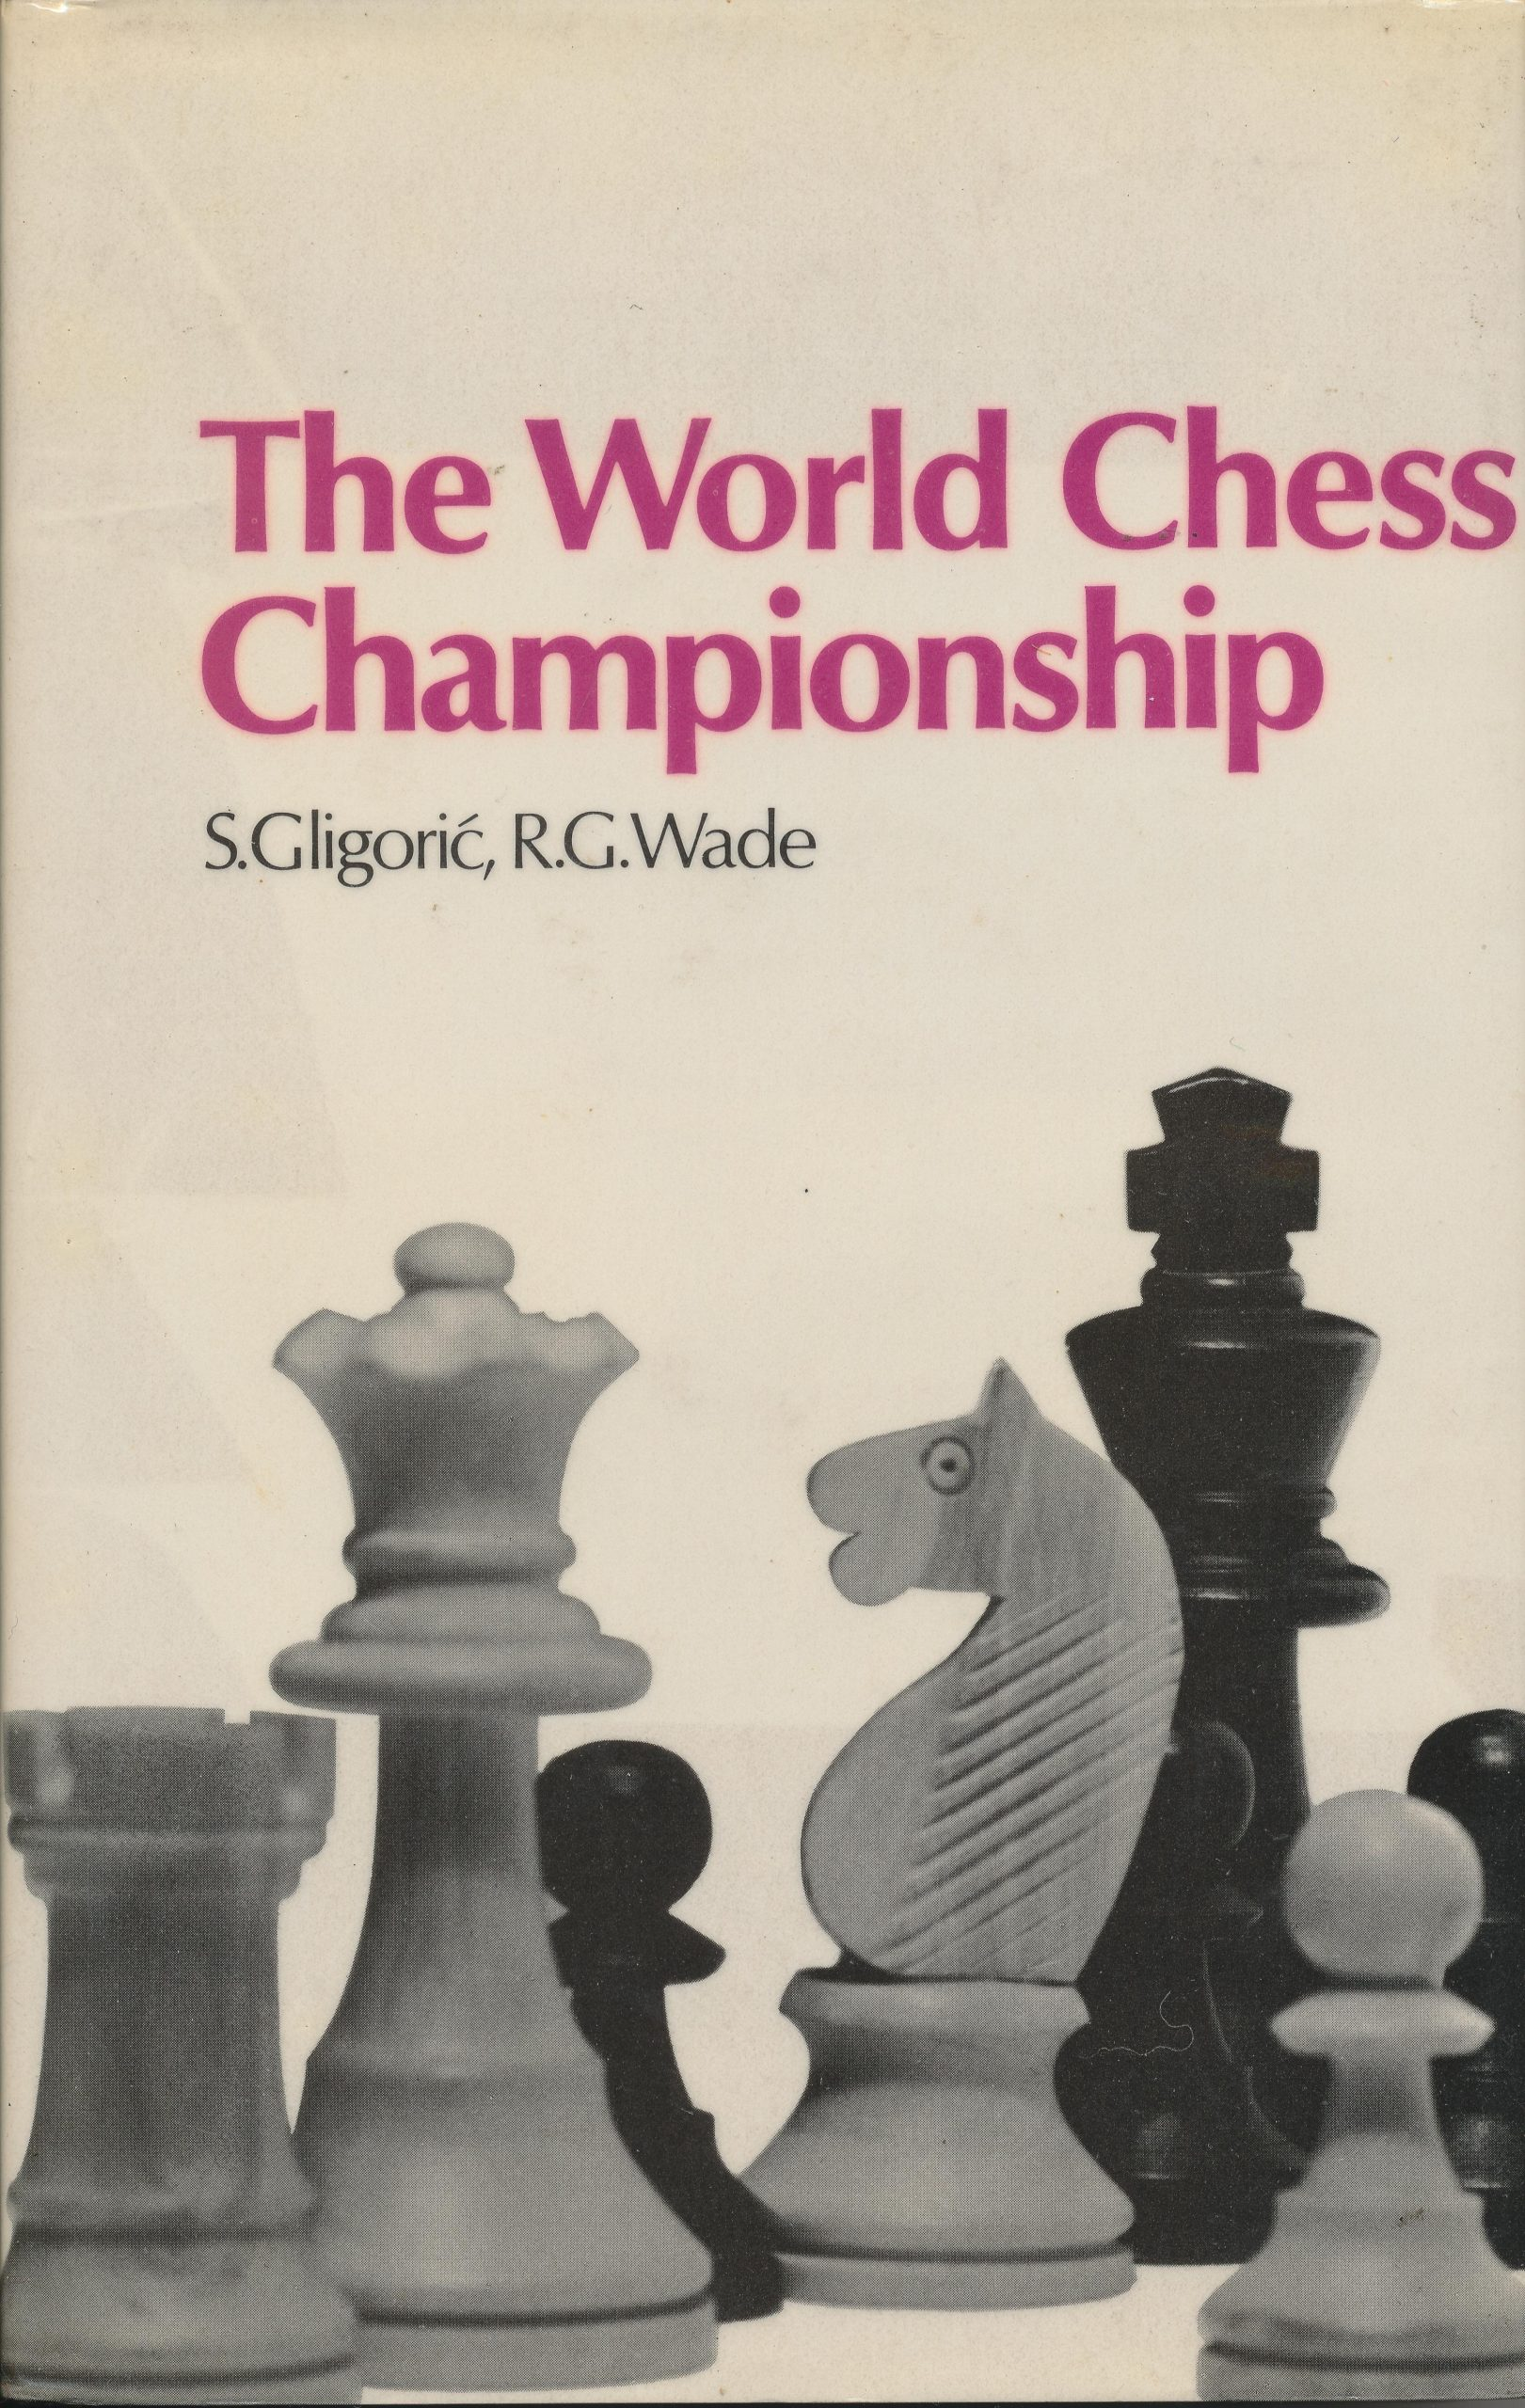 The World Chess Championship, Gligoric and Wade, Batsford, 1974